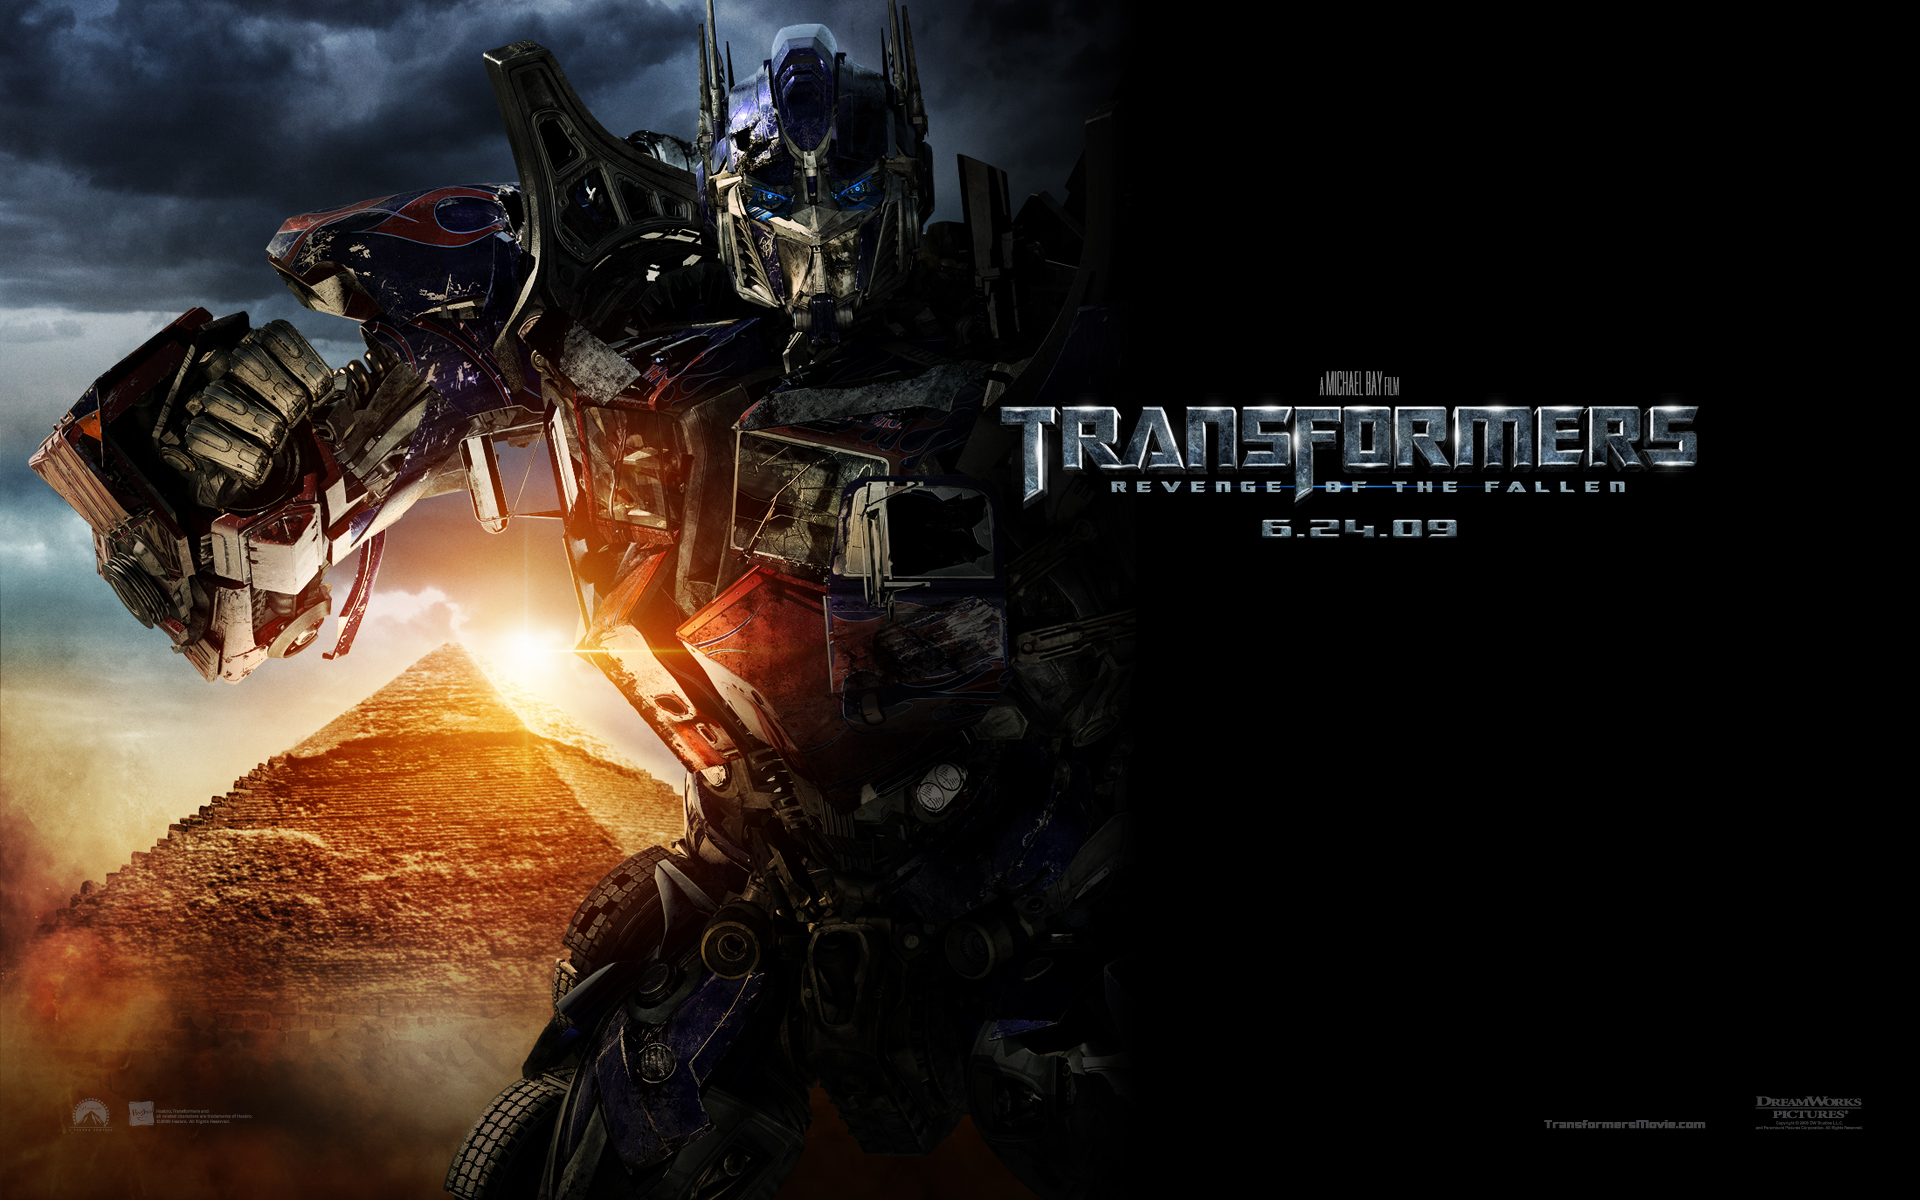 Transformers 2 Revenge of the Fallen 1931.74 Kb